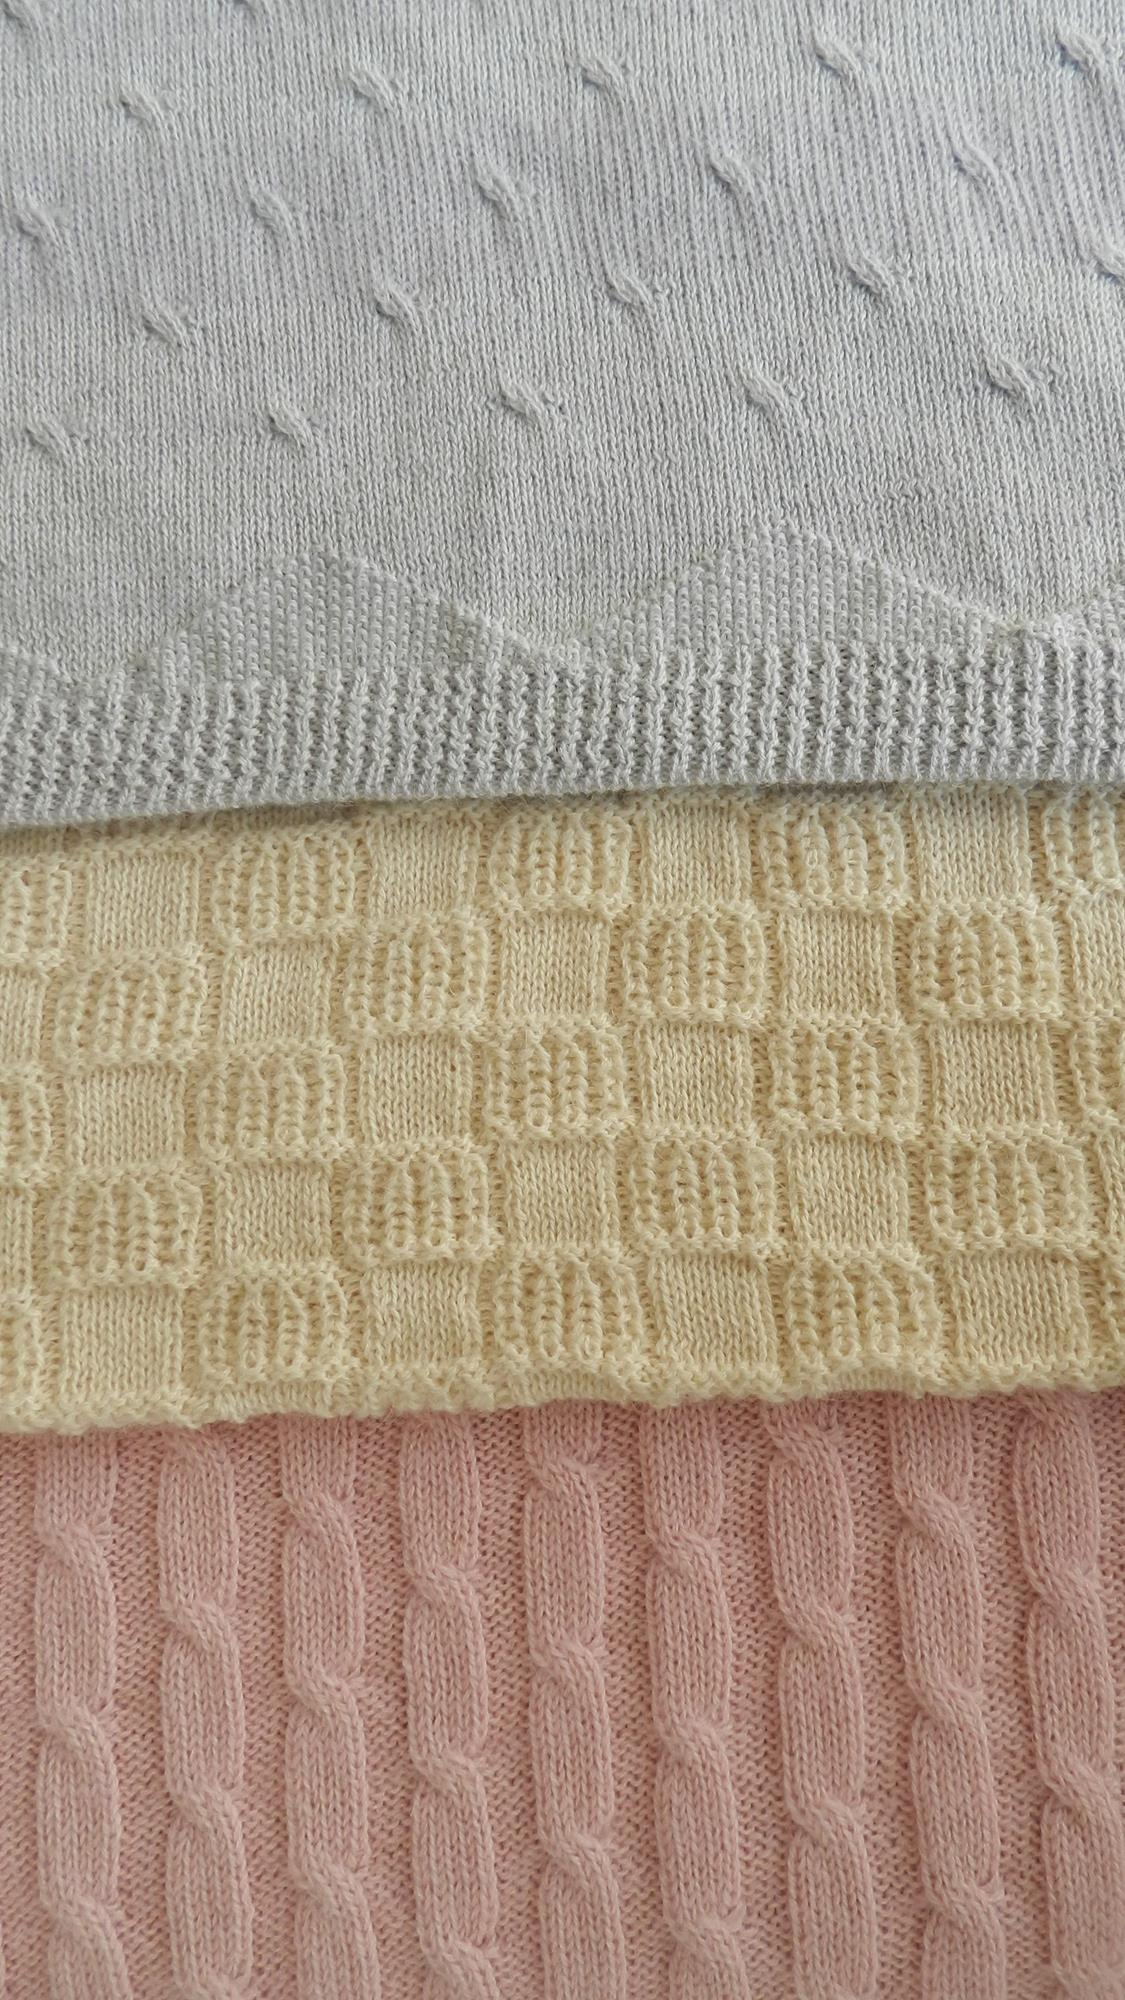 Swaddle your precious bundle in a super soft, cosy and hypoallergenic blanket.